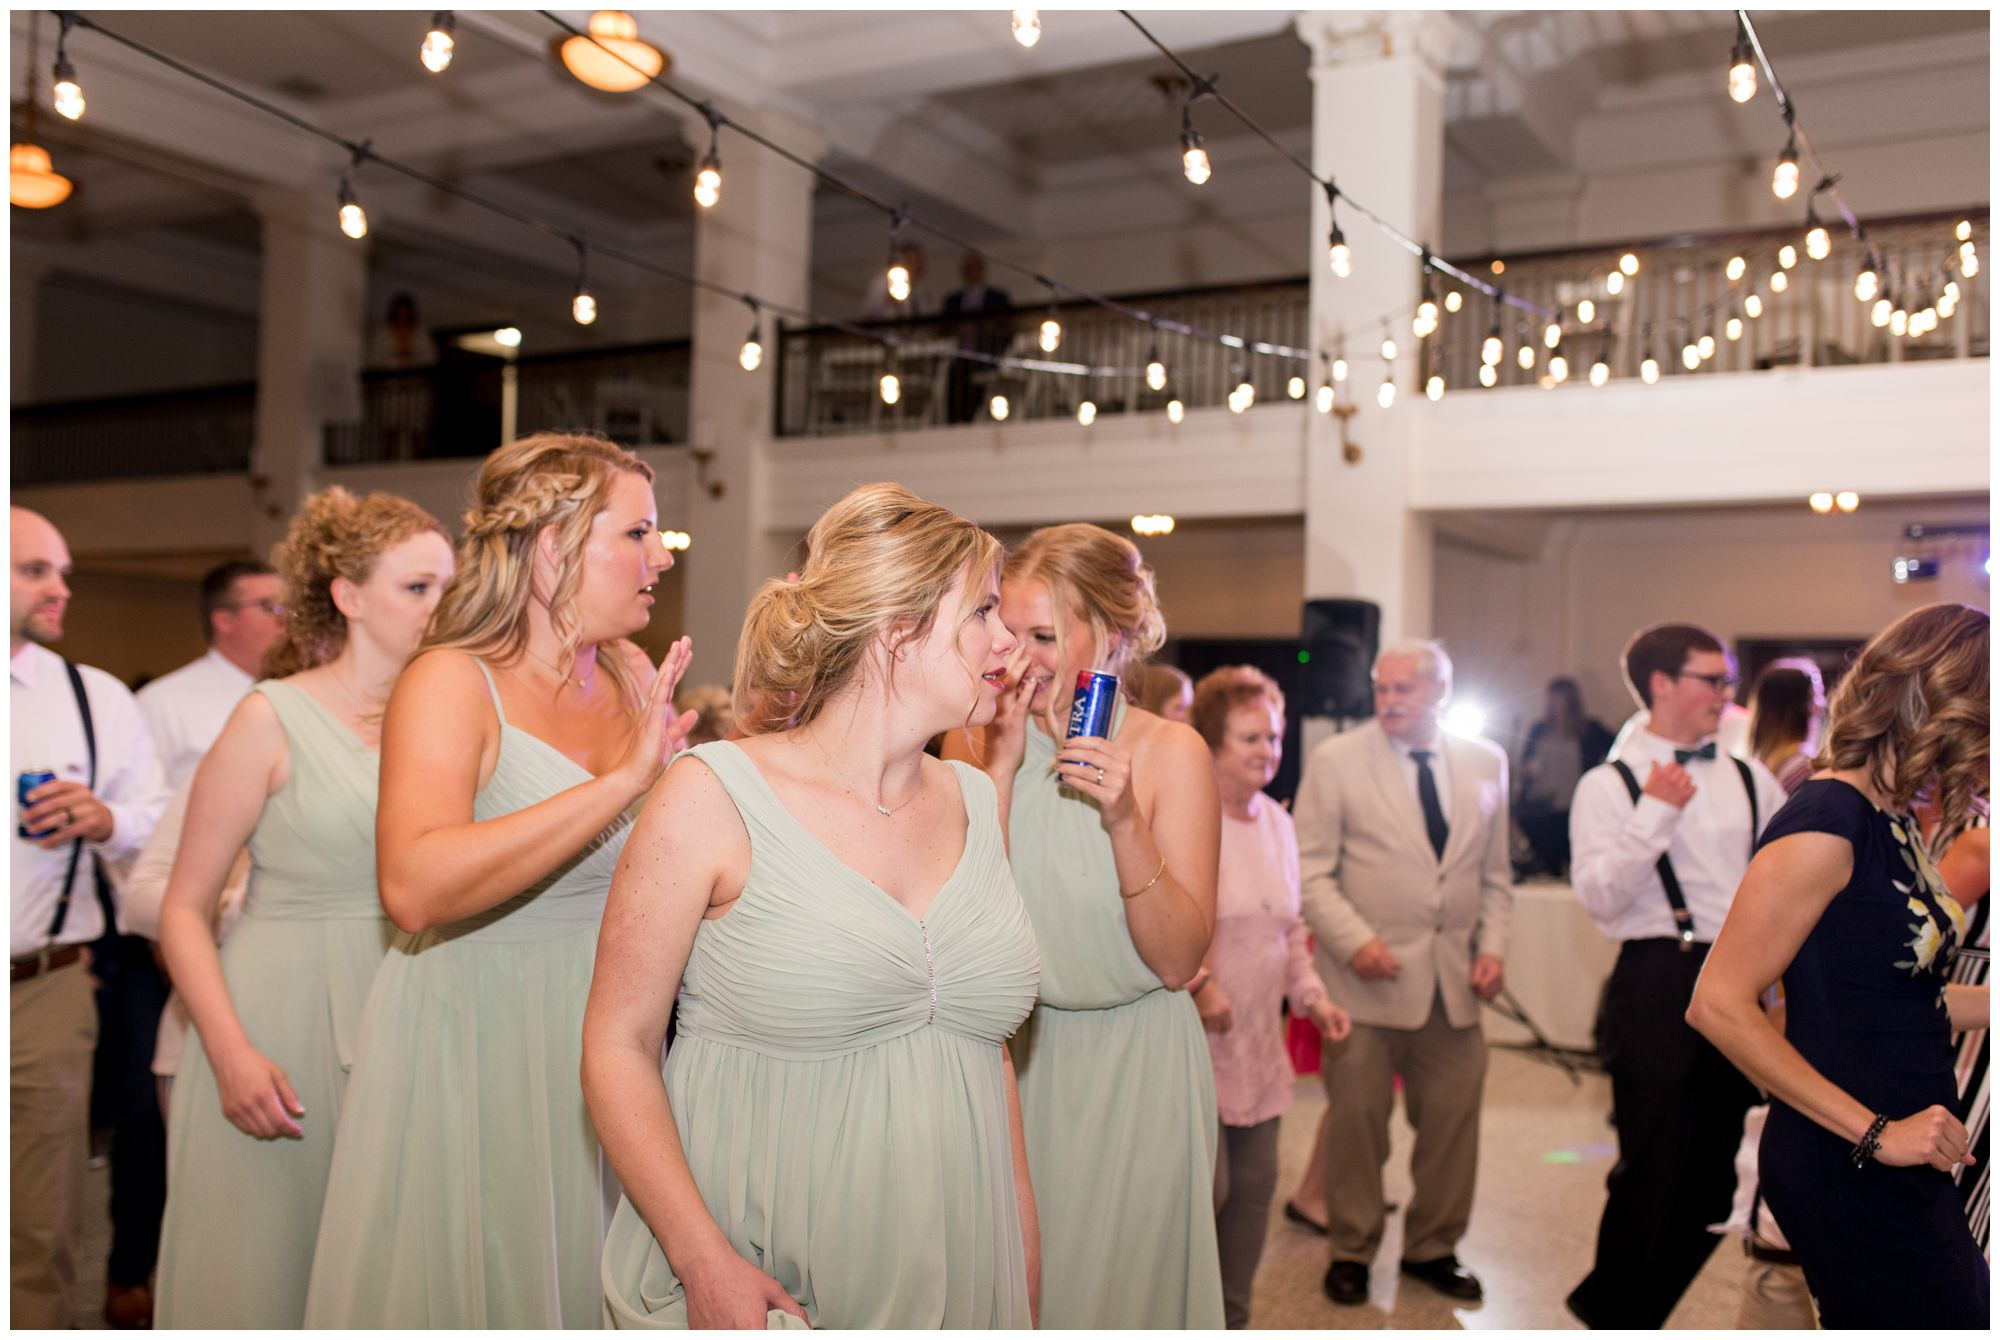 bridesmaids dance during wedding reception at Cornerstone Center for the Arts in Muncie Indiana